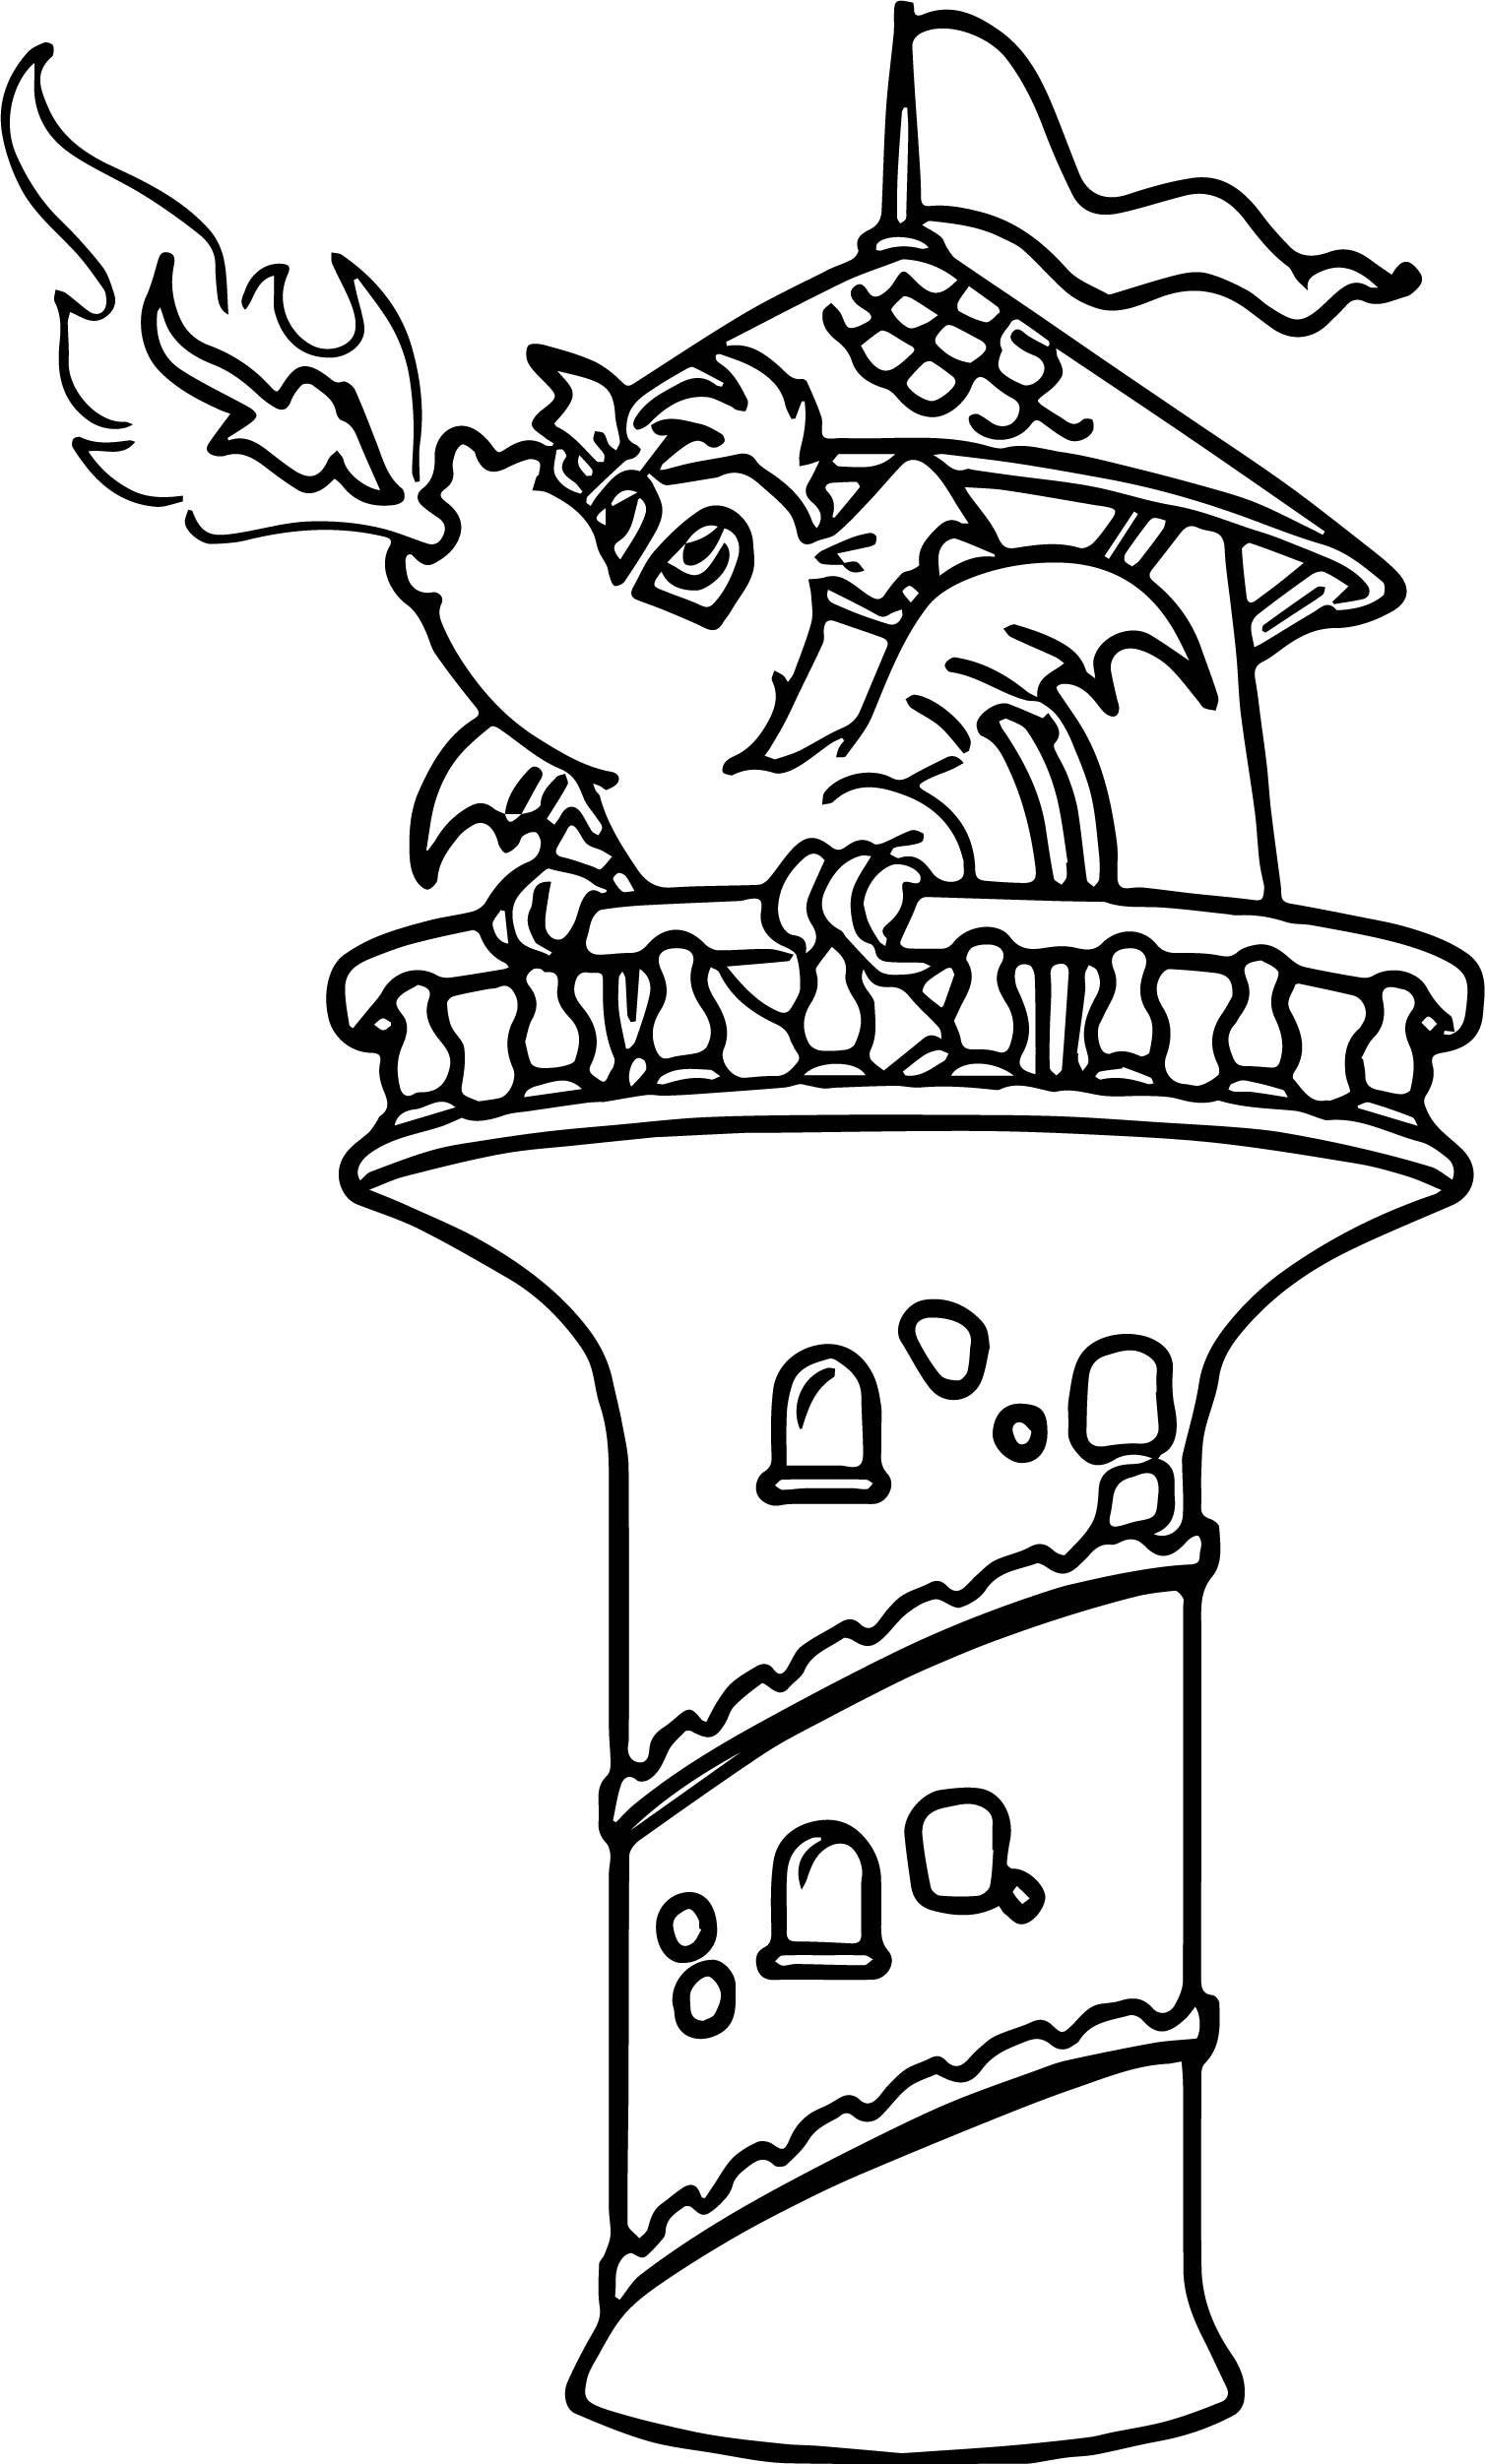 Dragon fire castle coloring page for Dragon and castle coloring pages